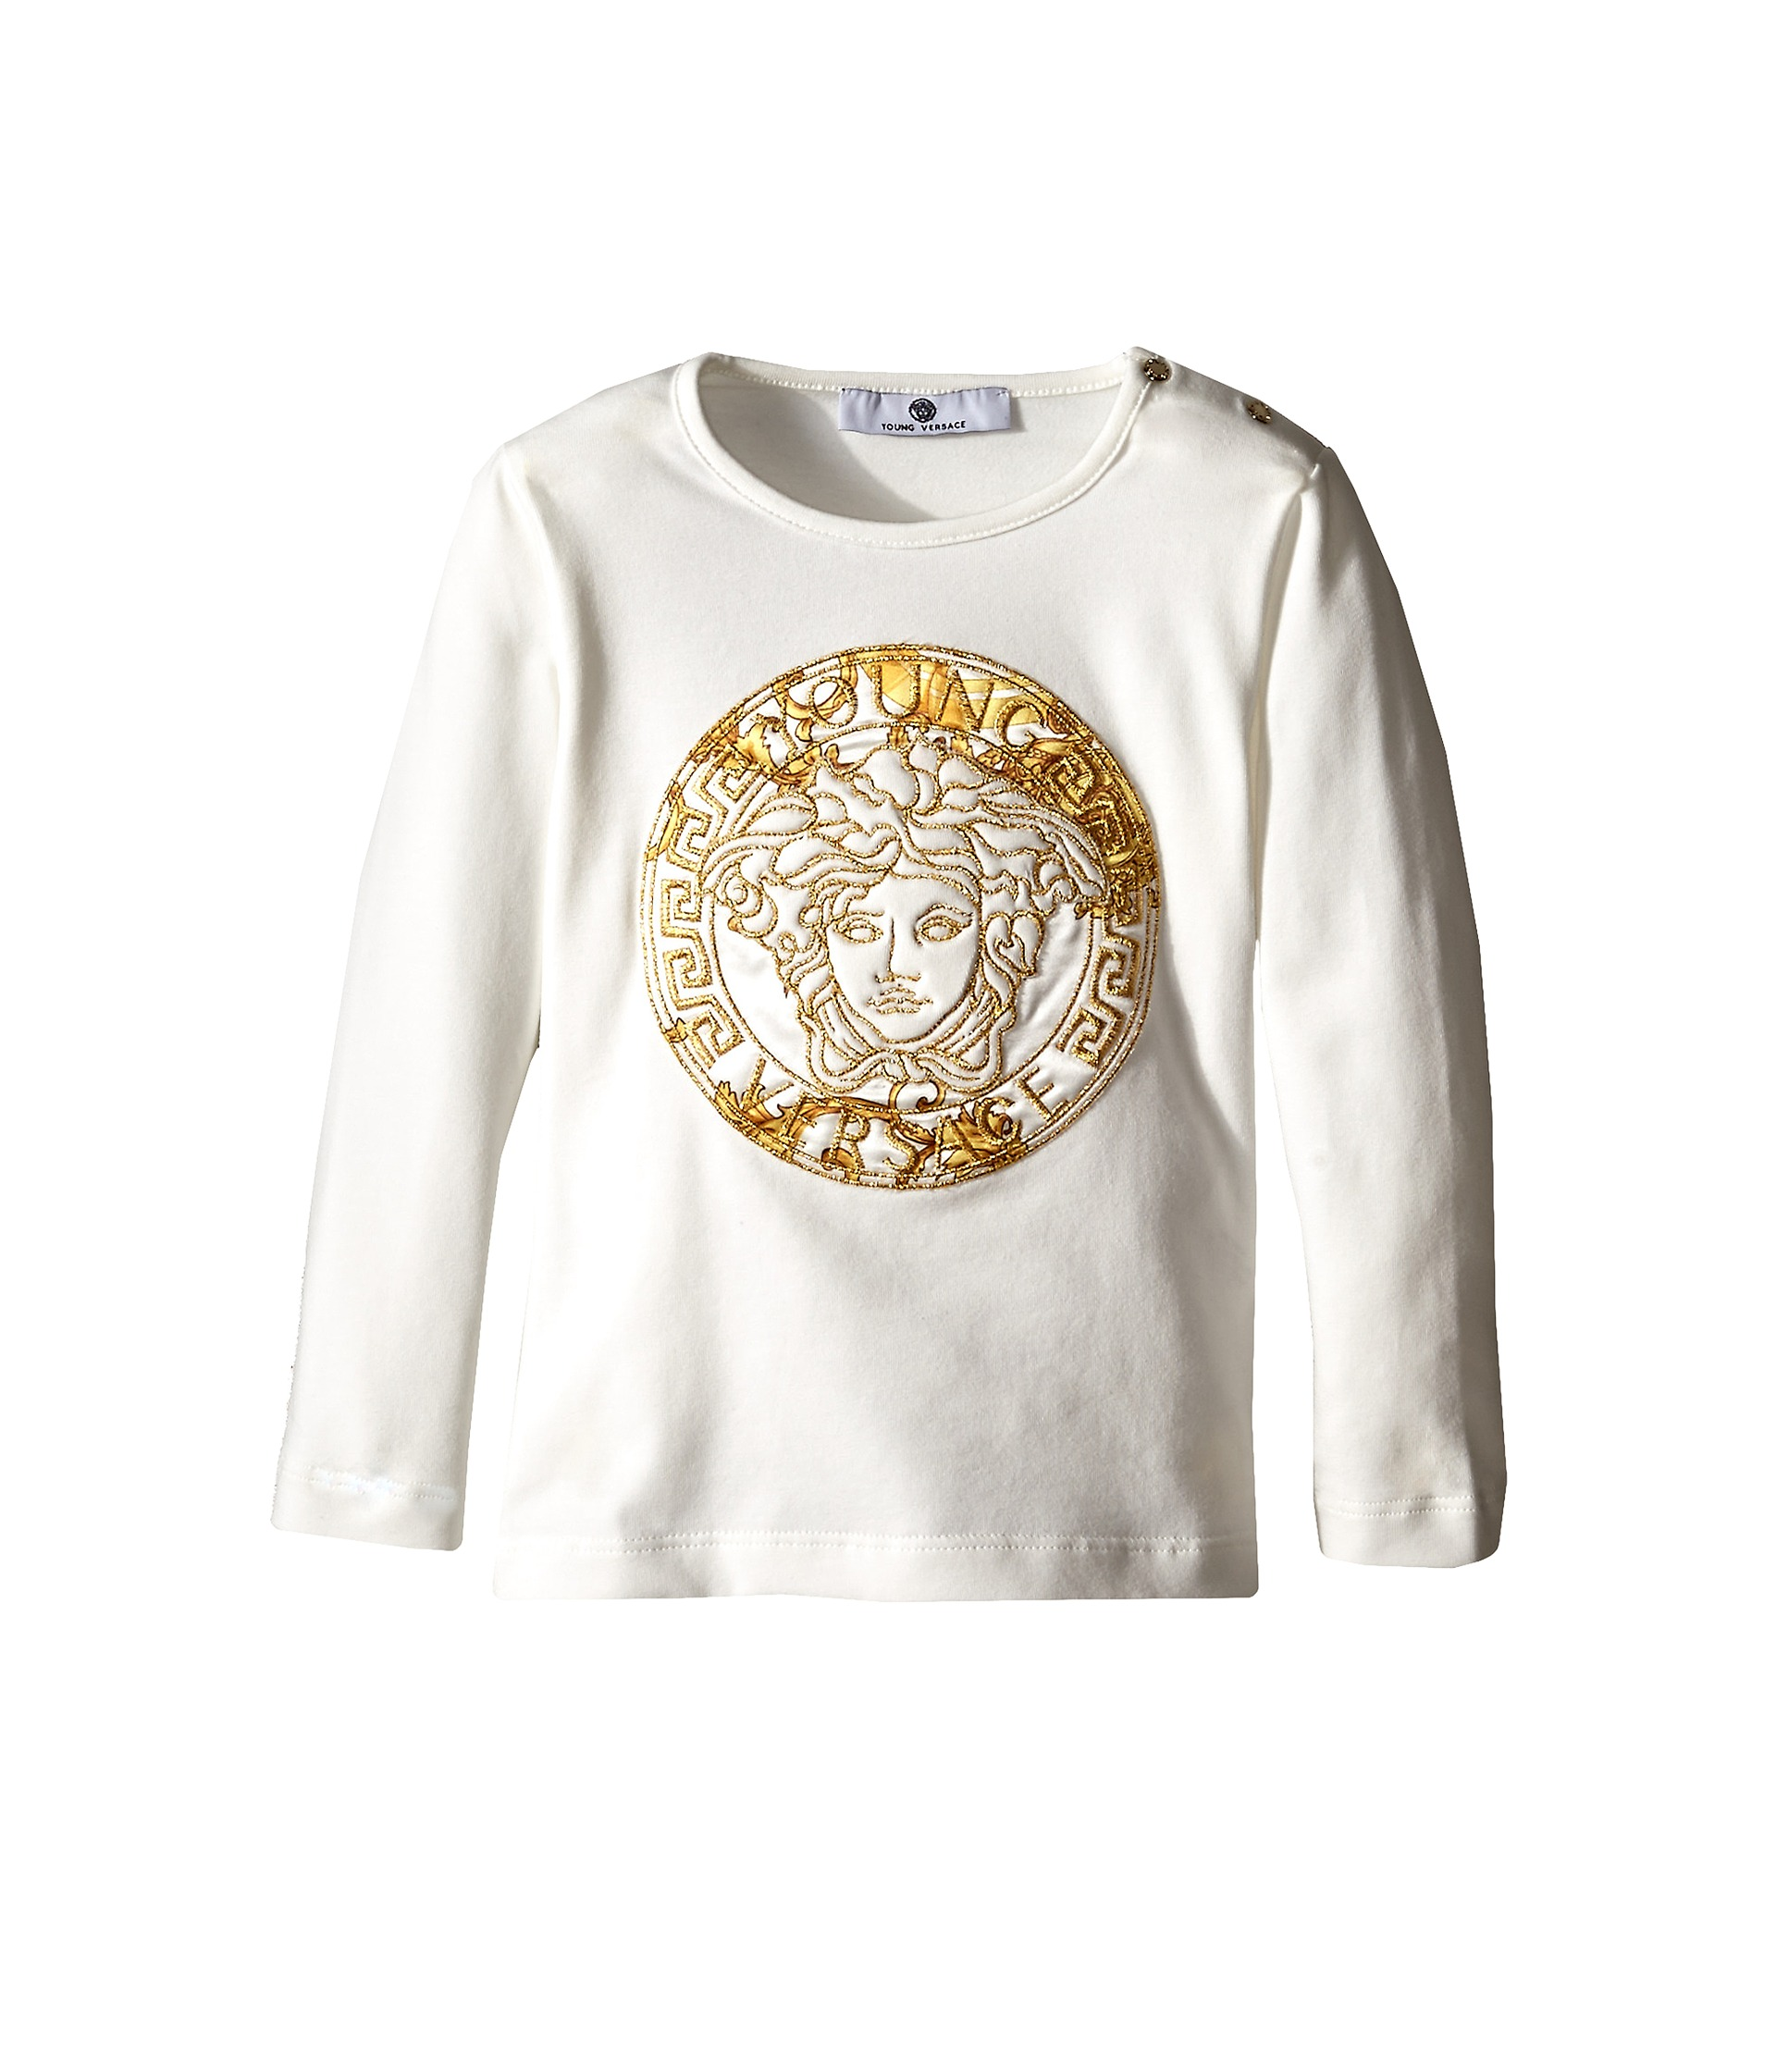 220c2a714 versace face shirts for kids versace face shirts for kids ...